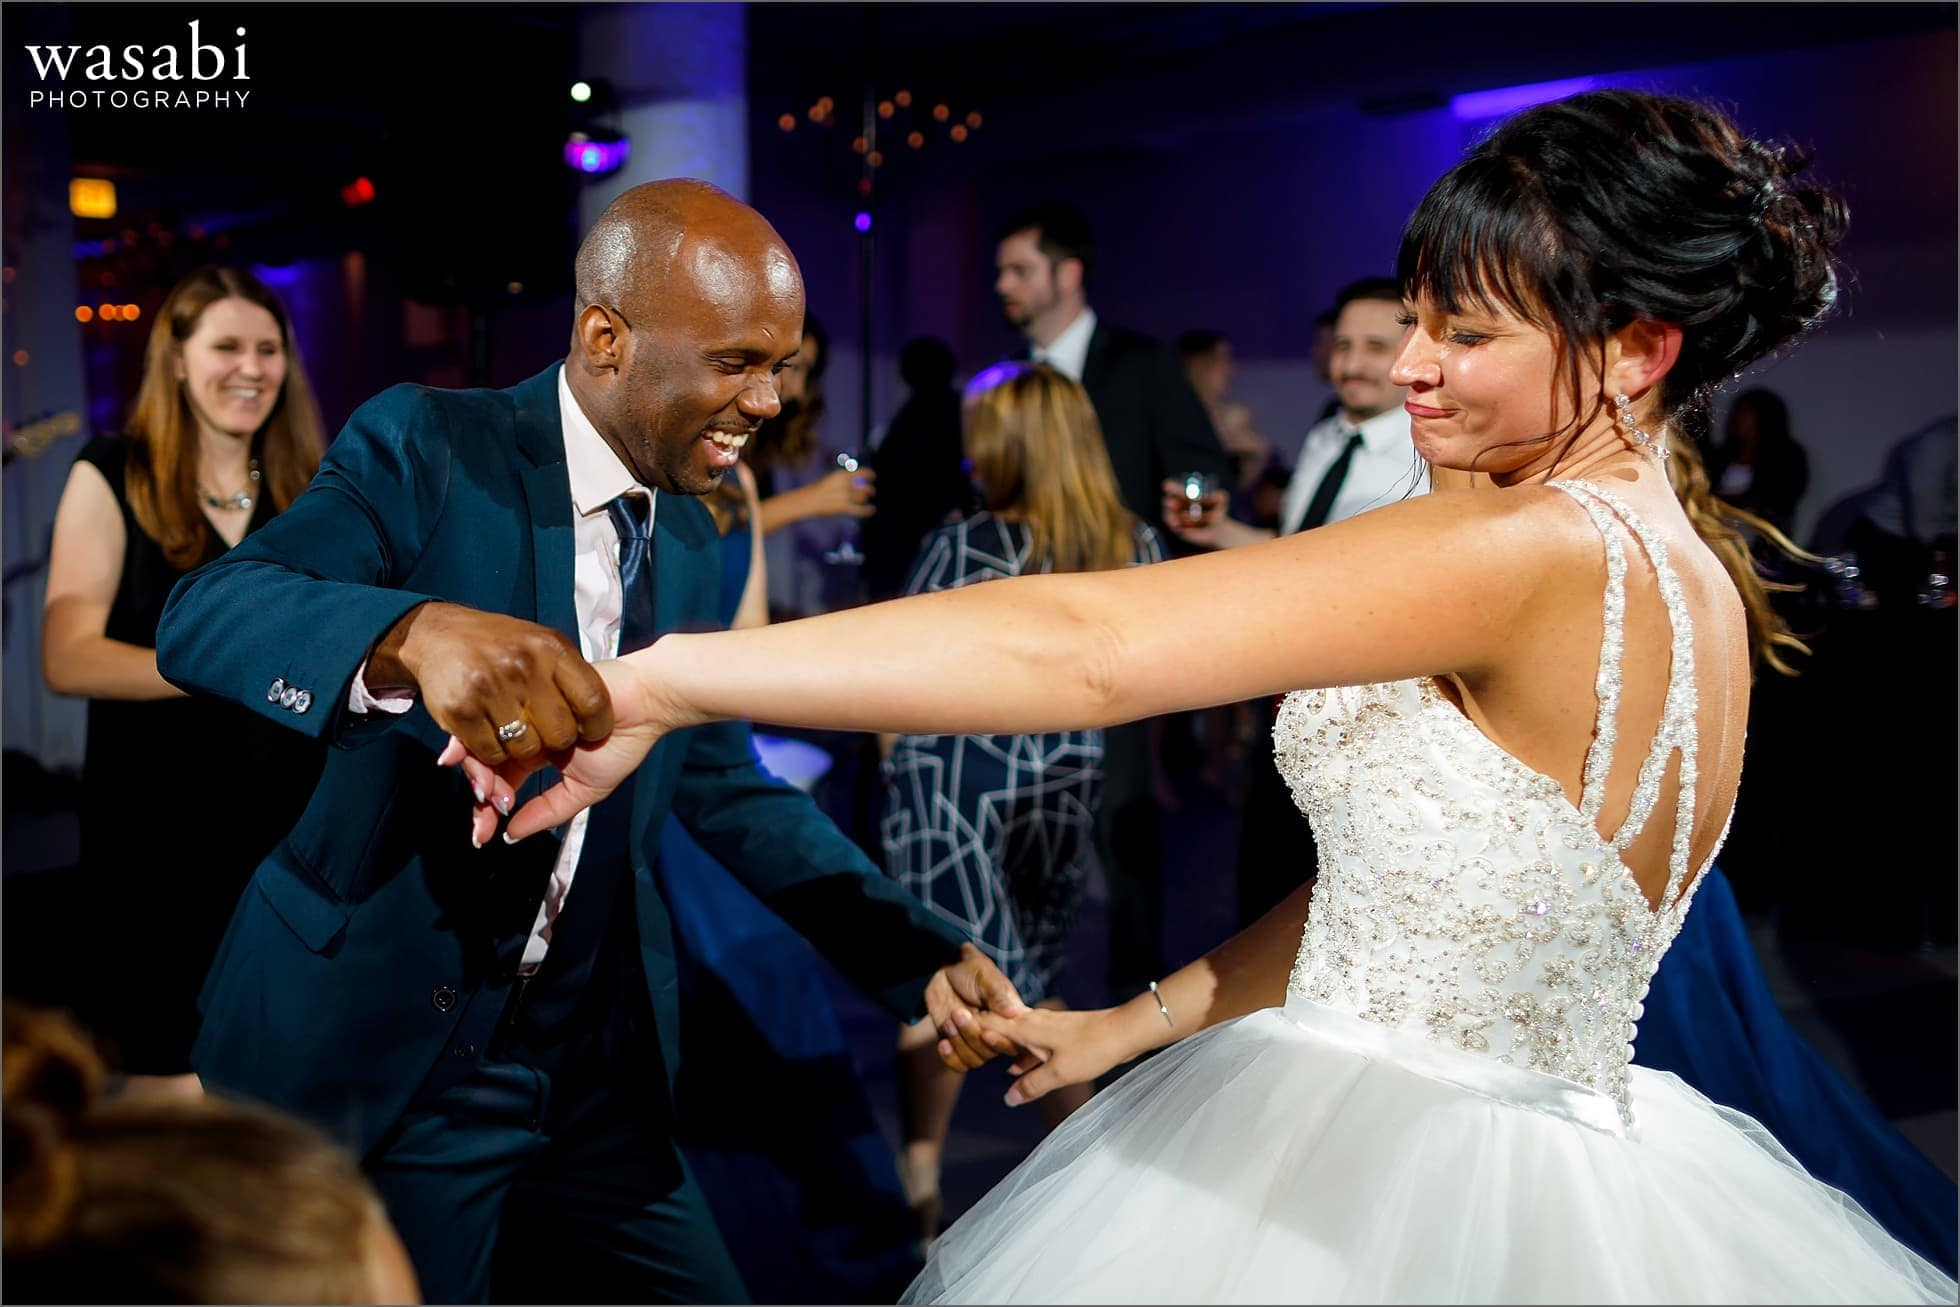 bride dances with friend during wedding reception at Room 1520 in Chicago